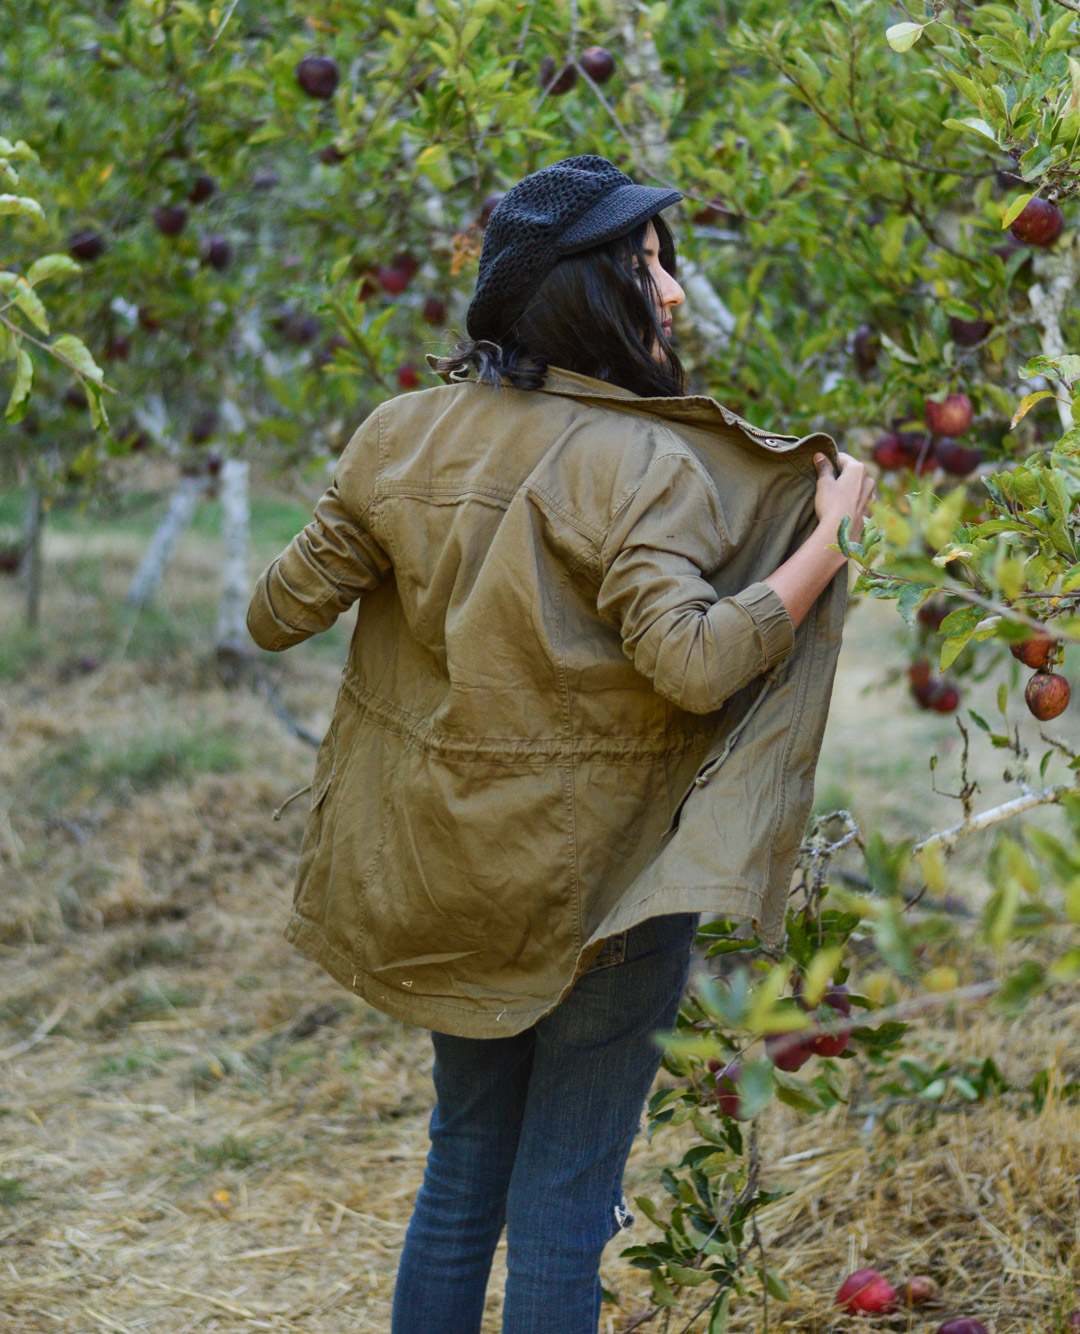 apple-picking-fall-florals-utility-jacket-california-style 4